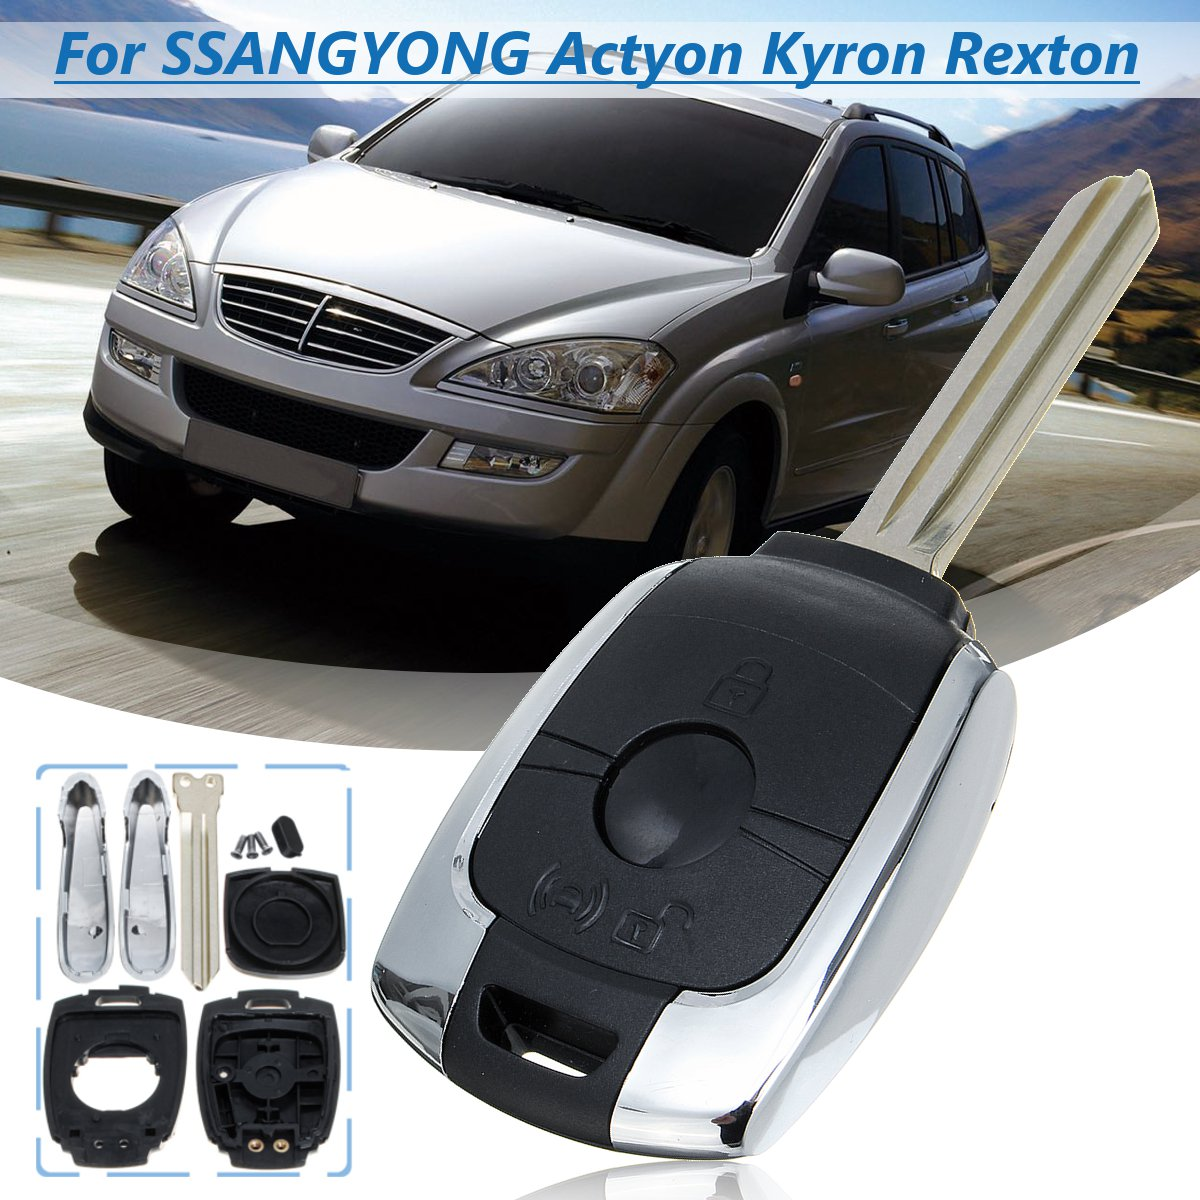 Korando C New Actyon Oem Parts Rear Tailgate wing logo badge for Ssangyong 2014